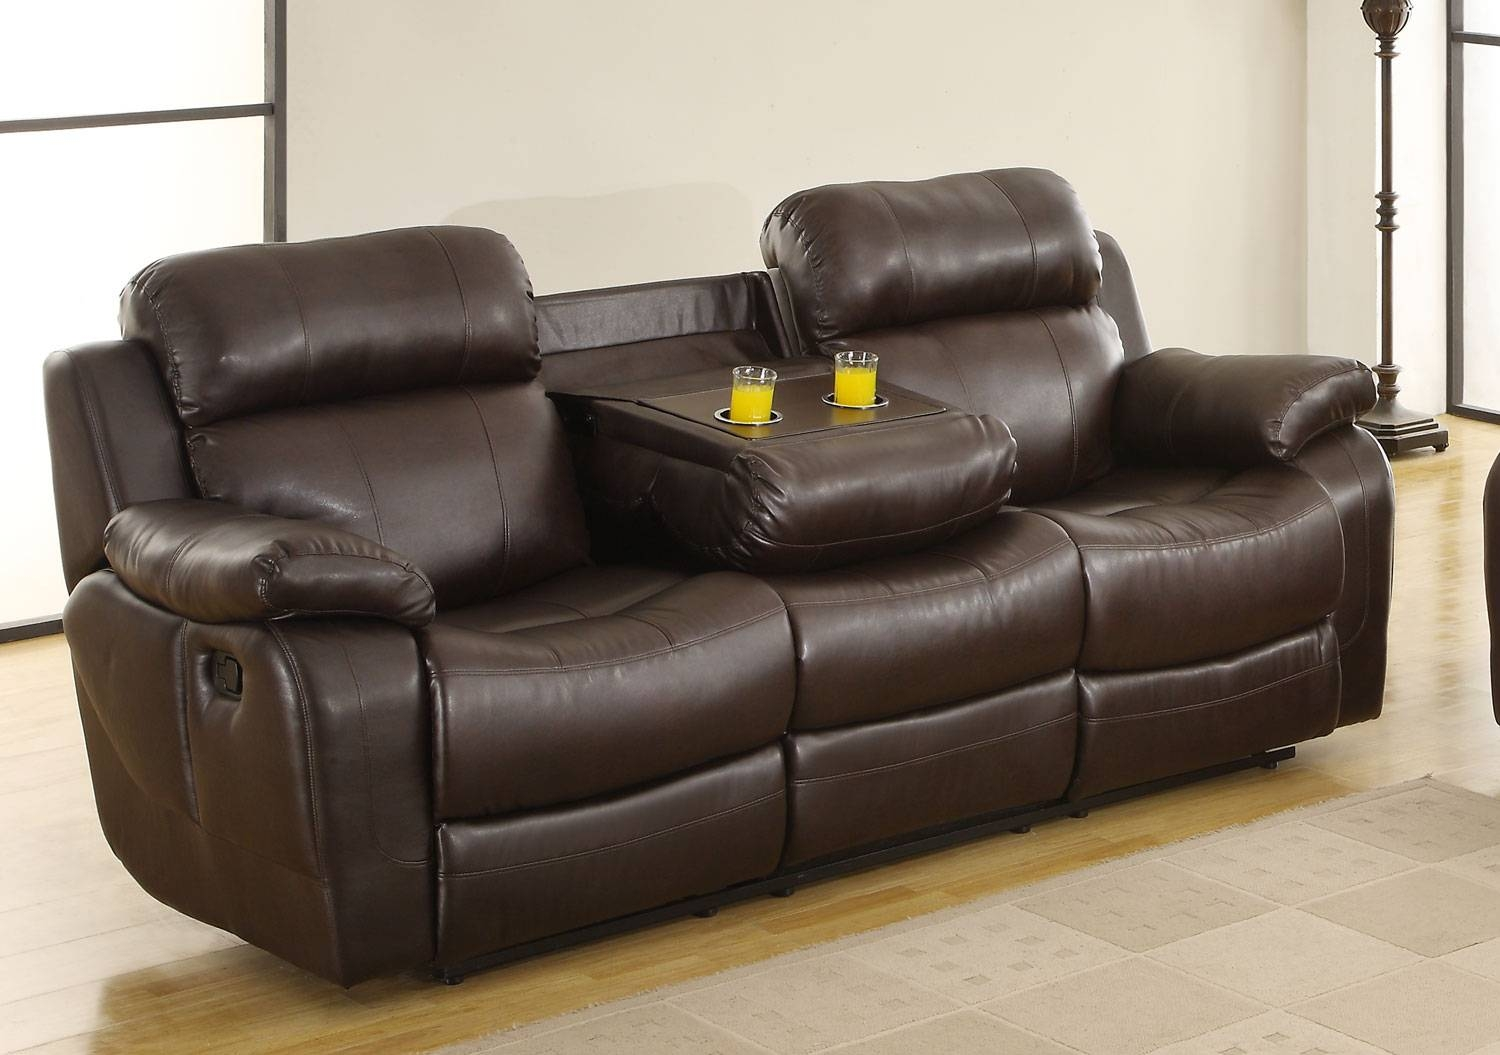 Homelegance Marille Sofa Recliner With Drop Cup Holder - Dark with regard to Sofas With Cup Holders (Image 8 of 15)